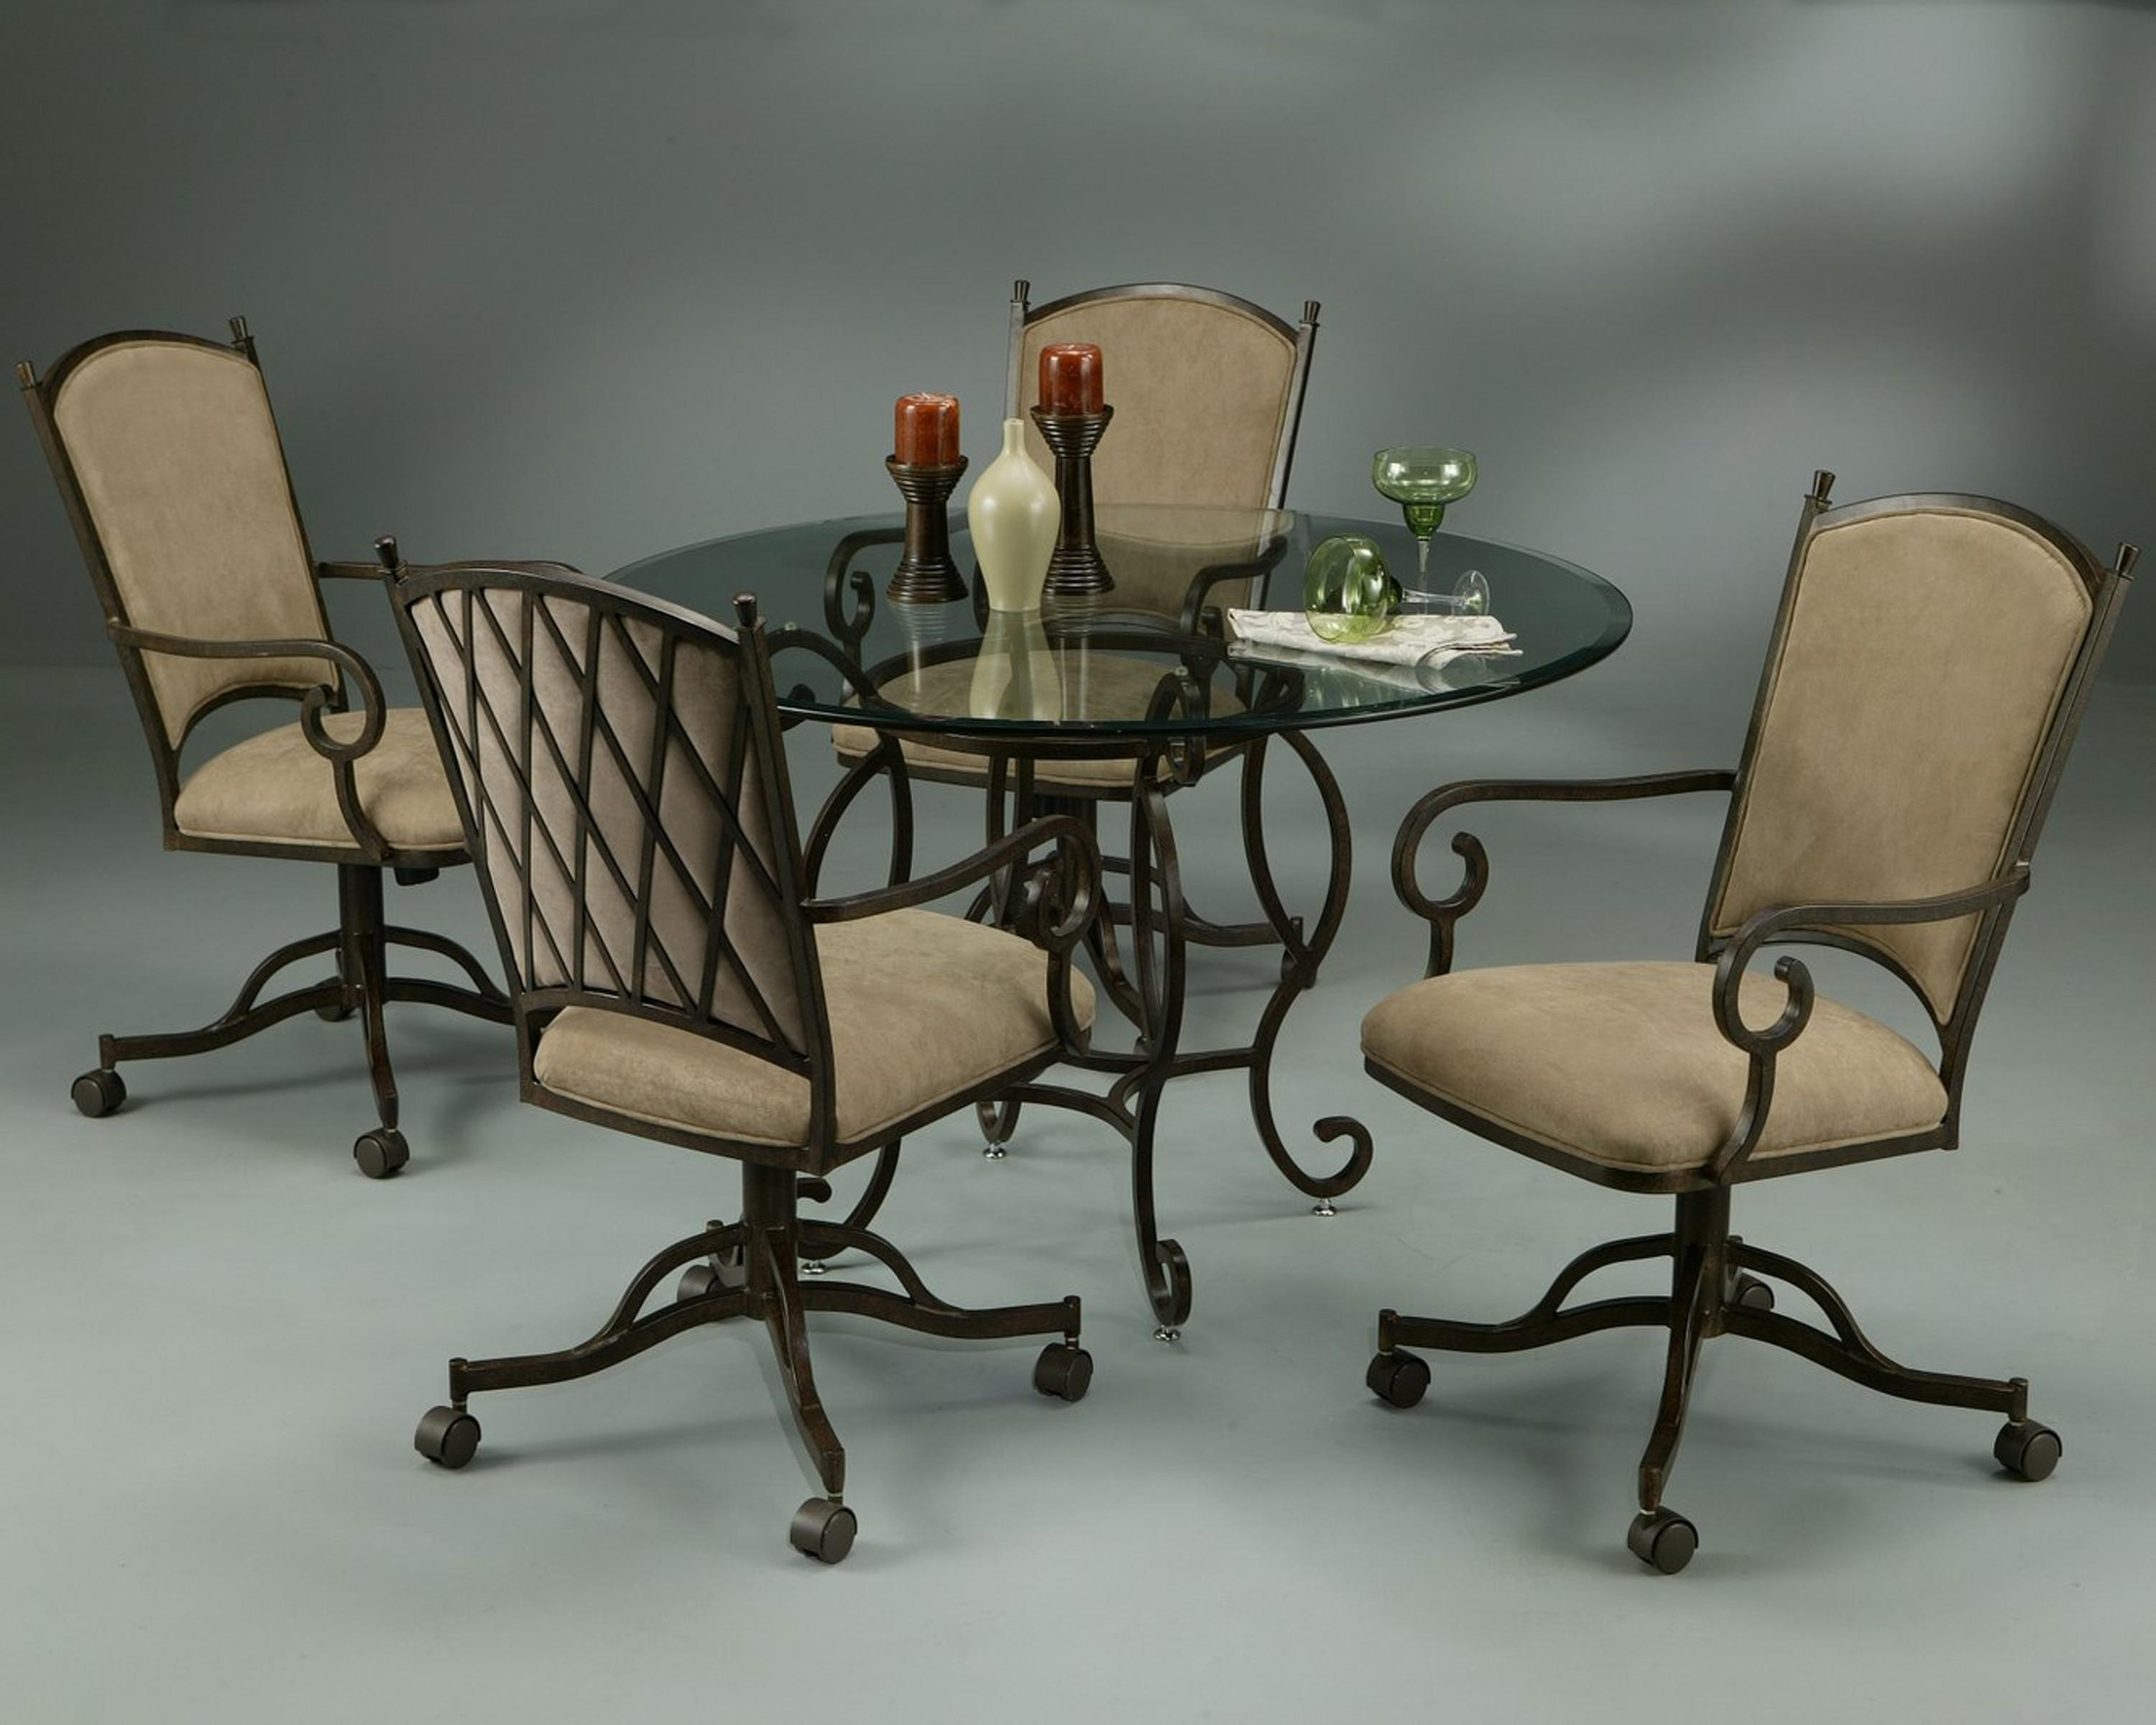 Dining Table With Atrium Caster Chairs with Casters Sofas